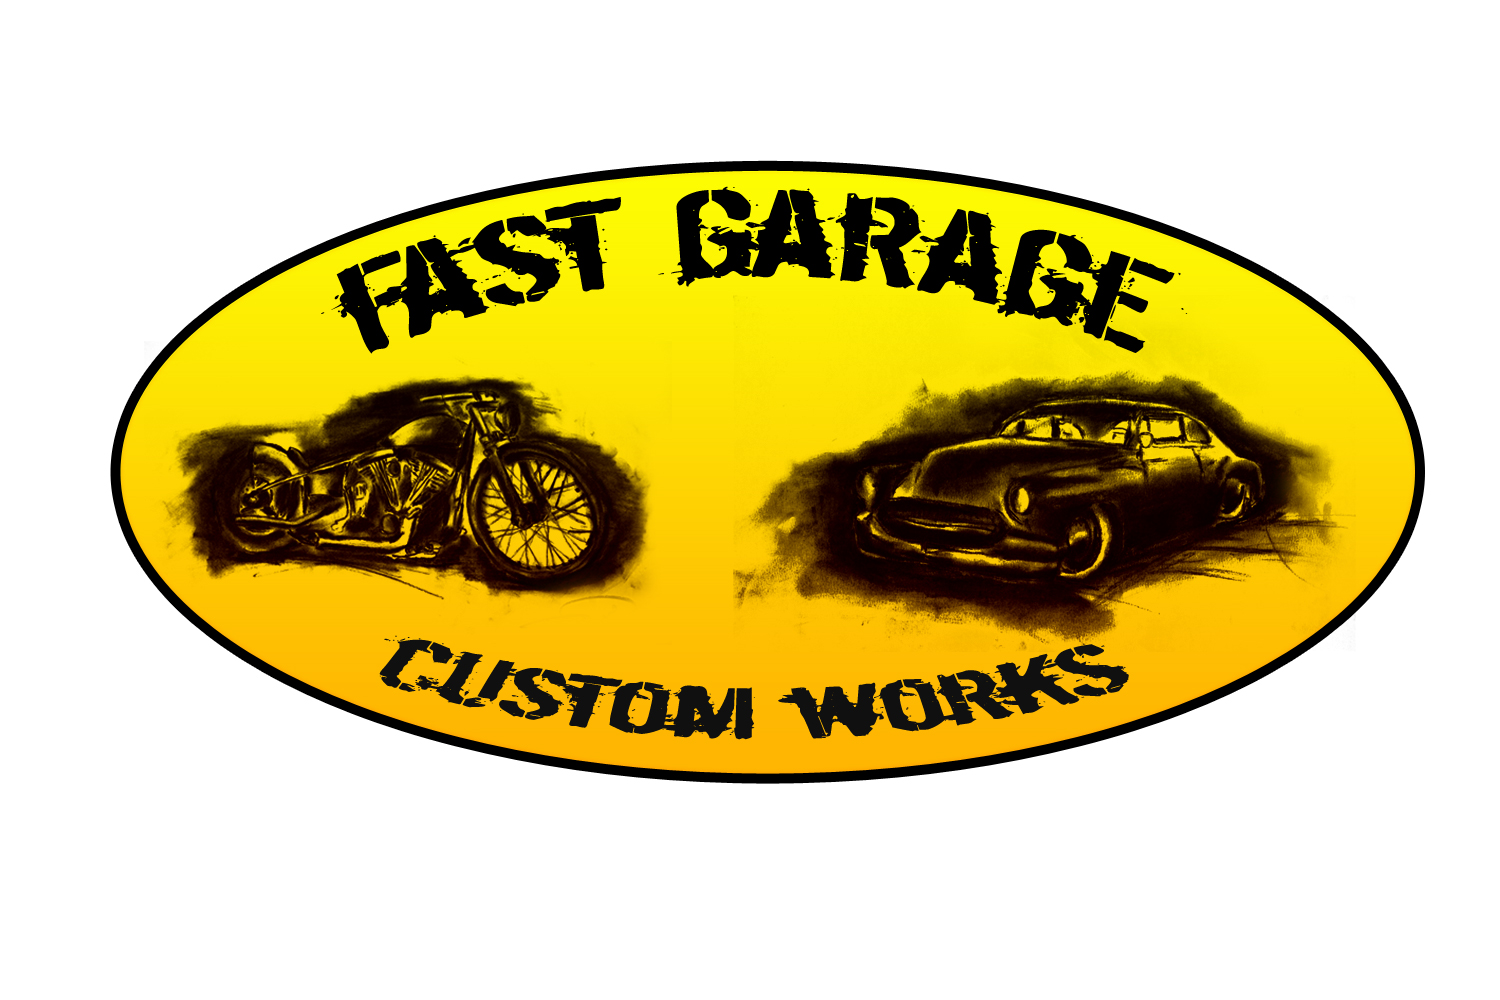 fast garage automobiles motorcycles restorations and custom works the start of a new logo by. Black Bedroom Furniture Sets. Home Design Ideas